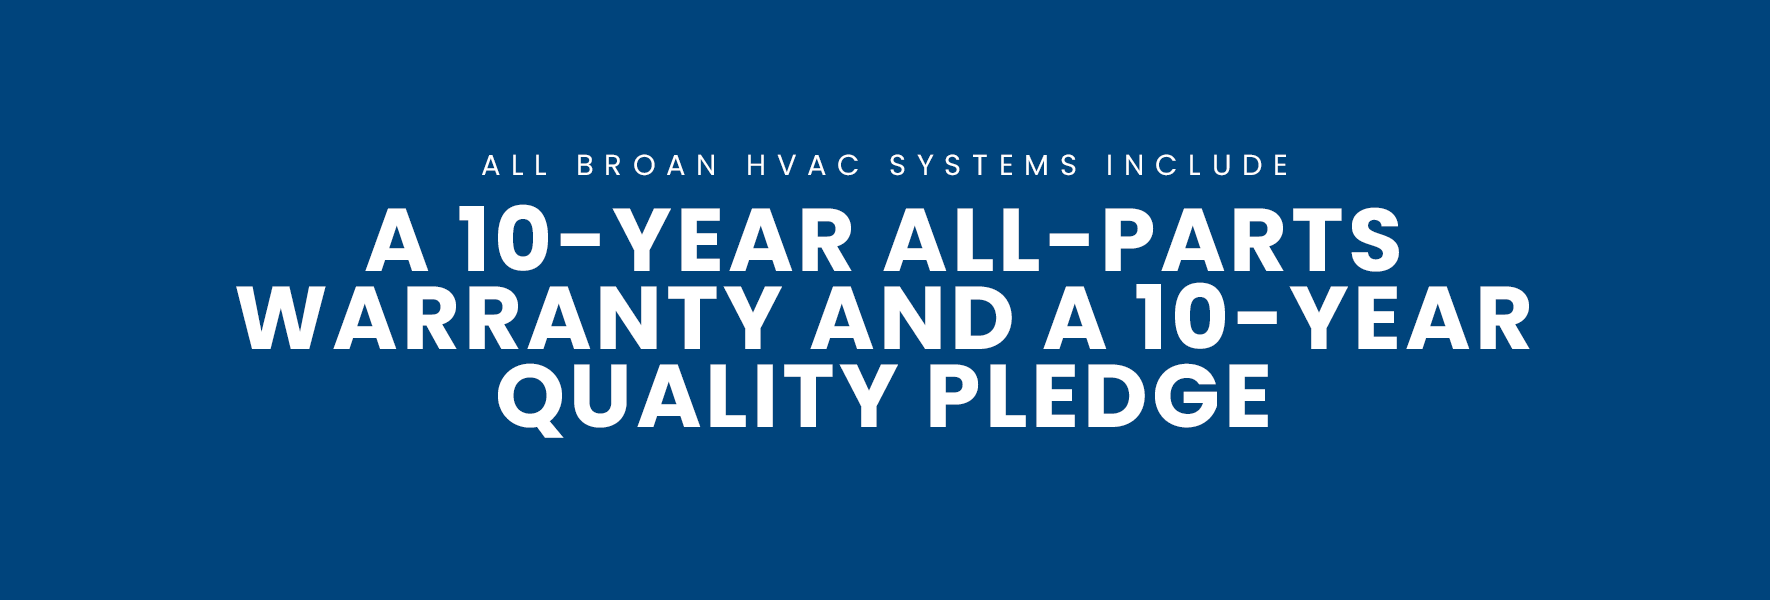 A 10-YEAR ALL-PARTS WARRANTY AND A 10-YEAR QUALITY PLEDGE*